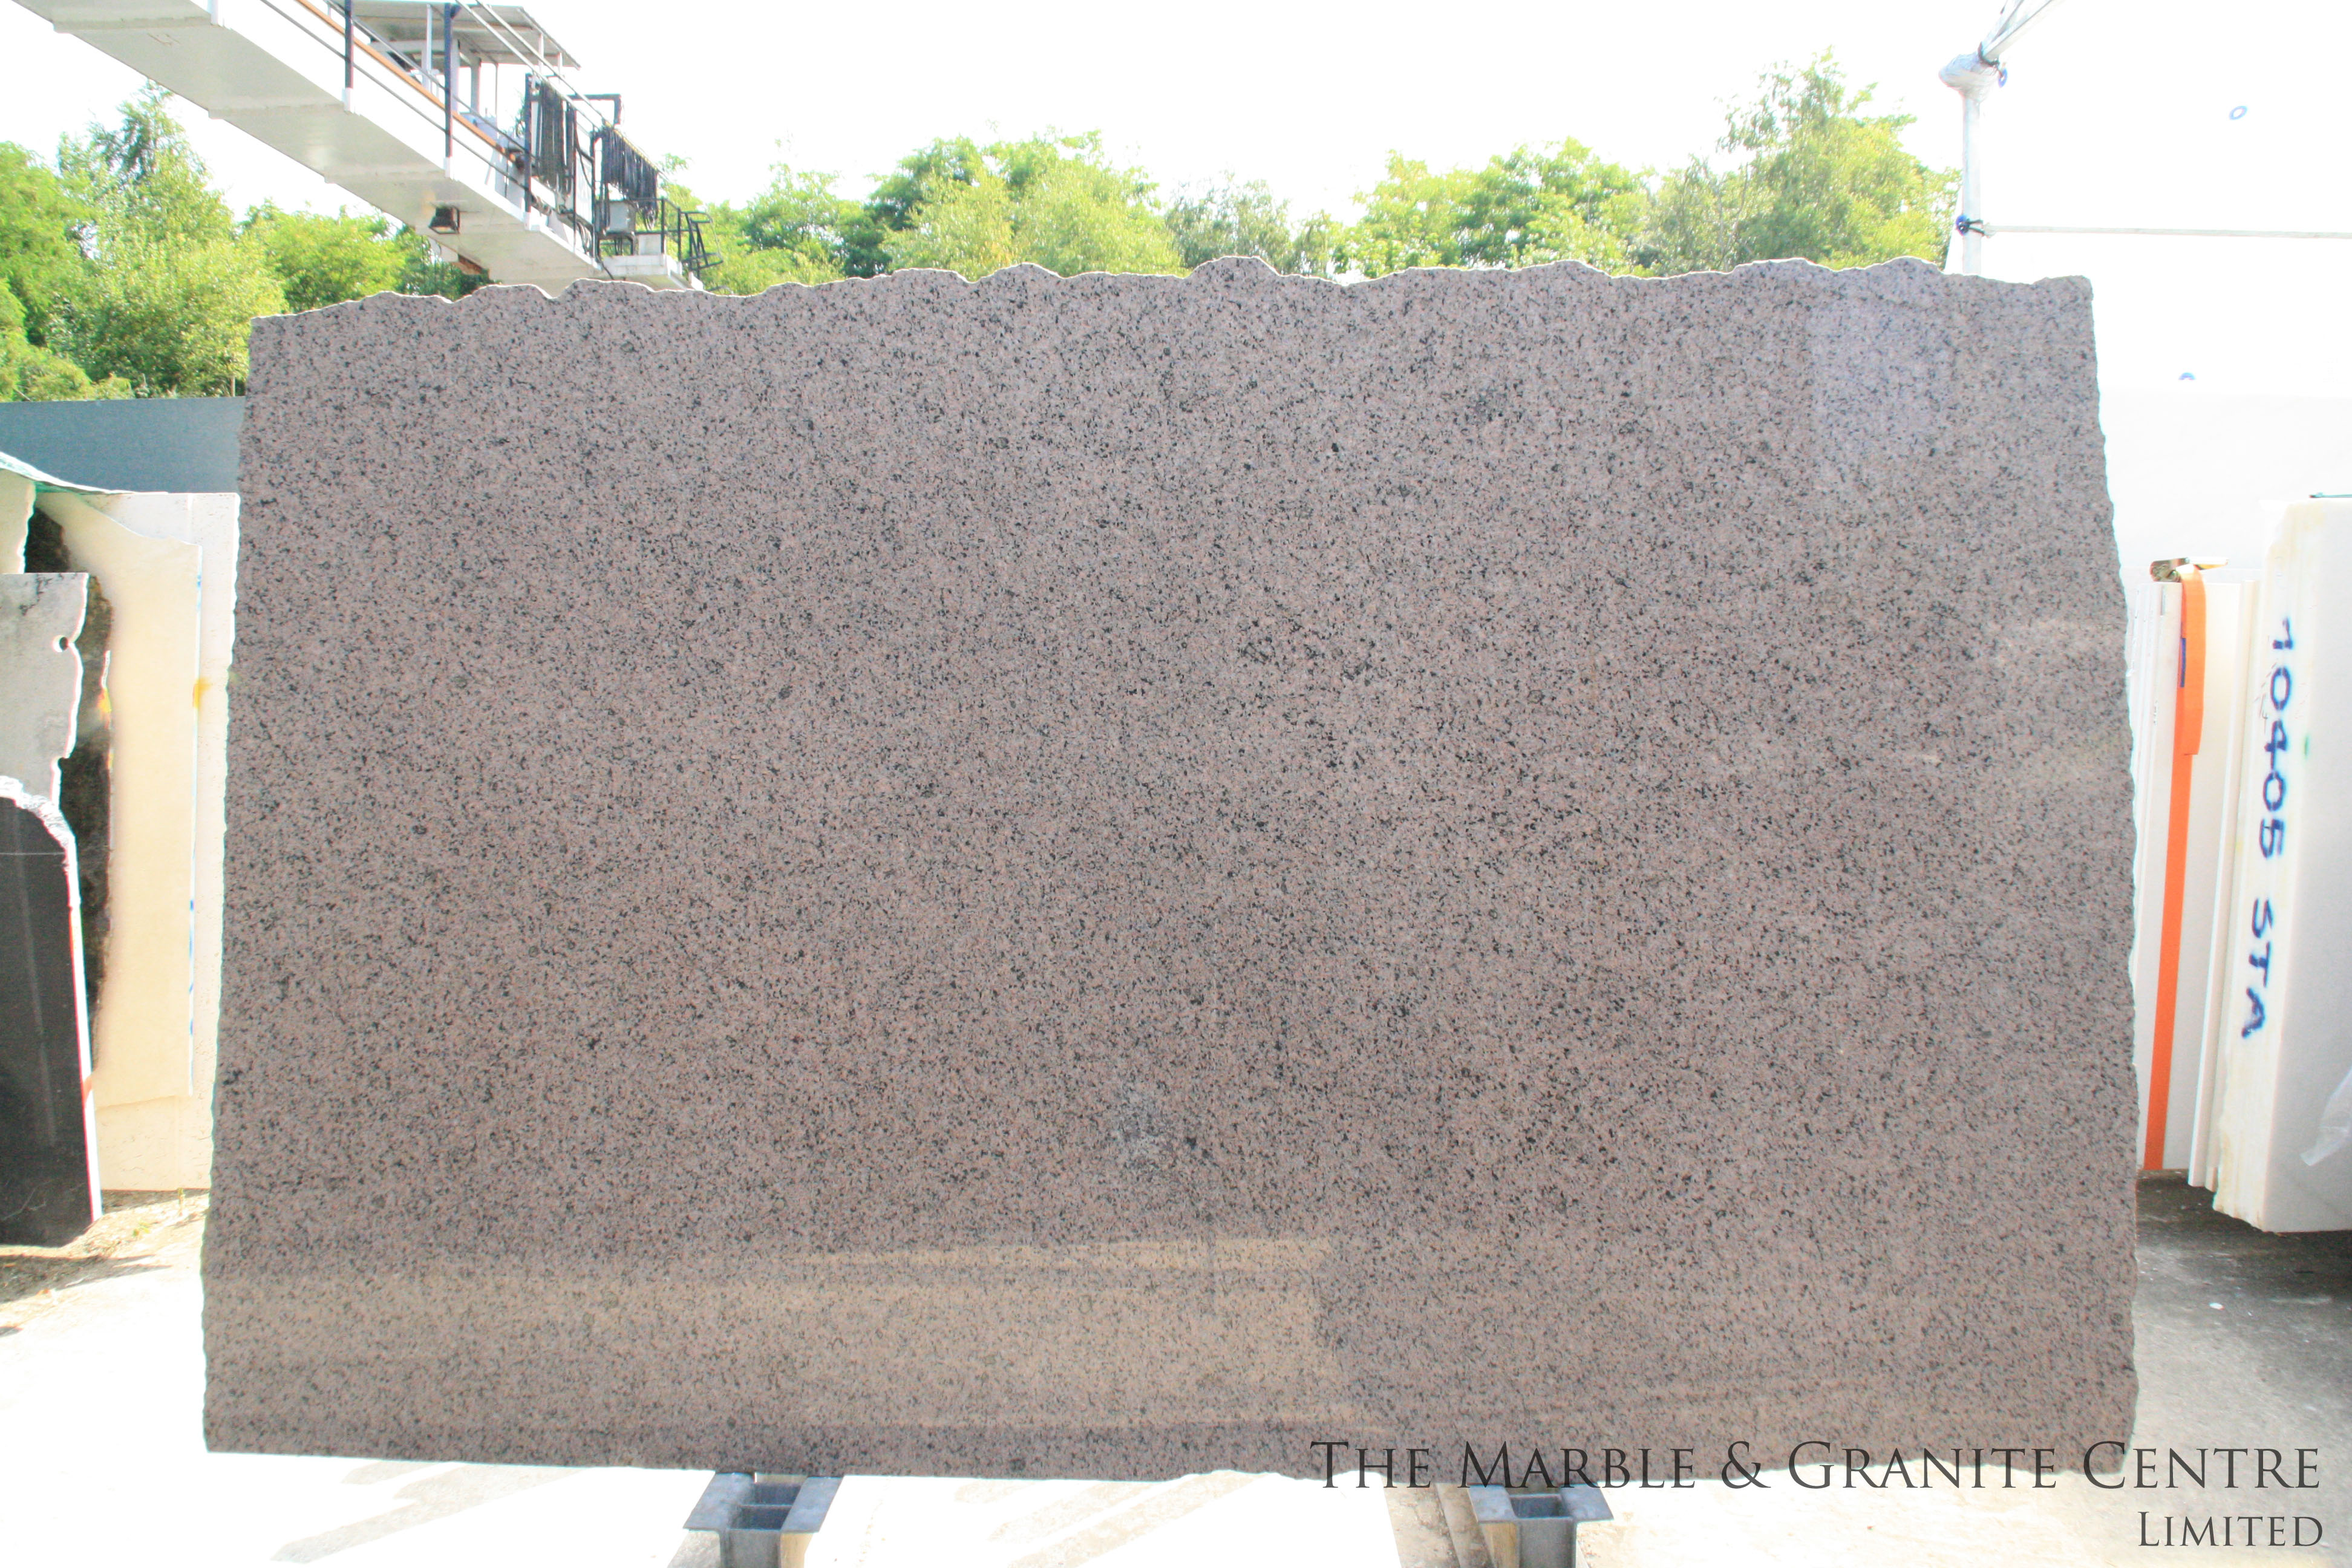 Granite Castor Blue Polished 30 mm [20261]